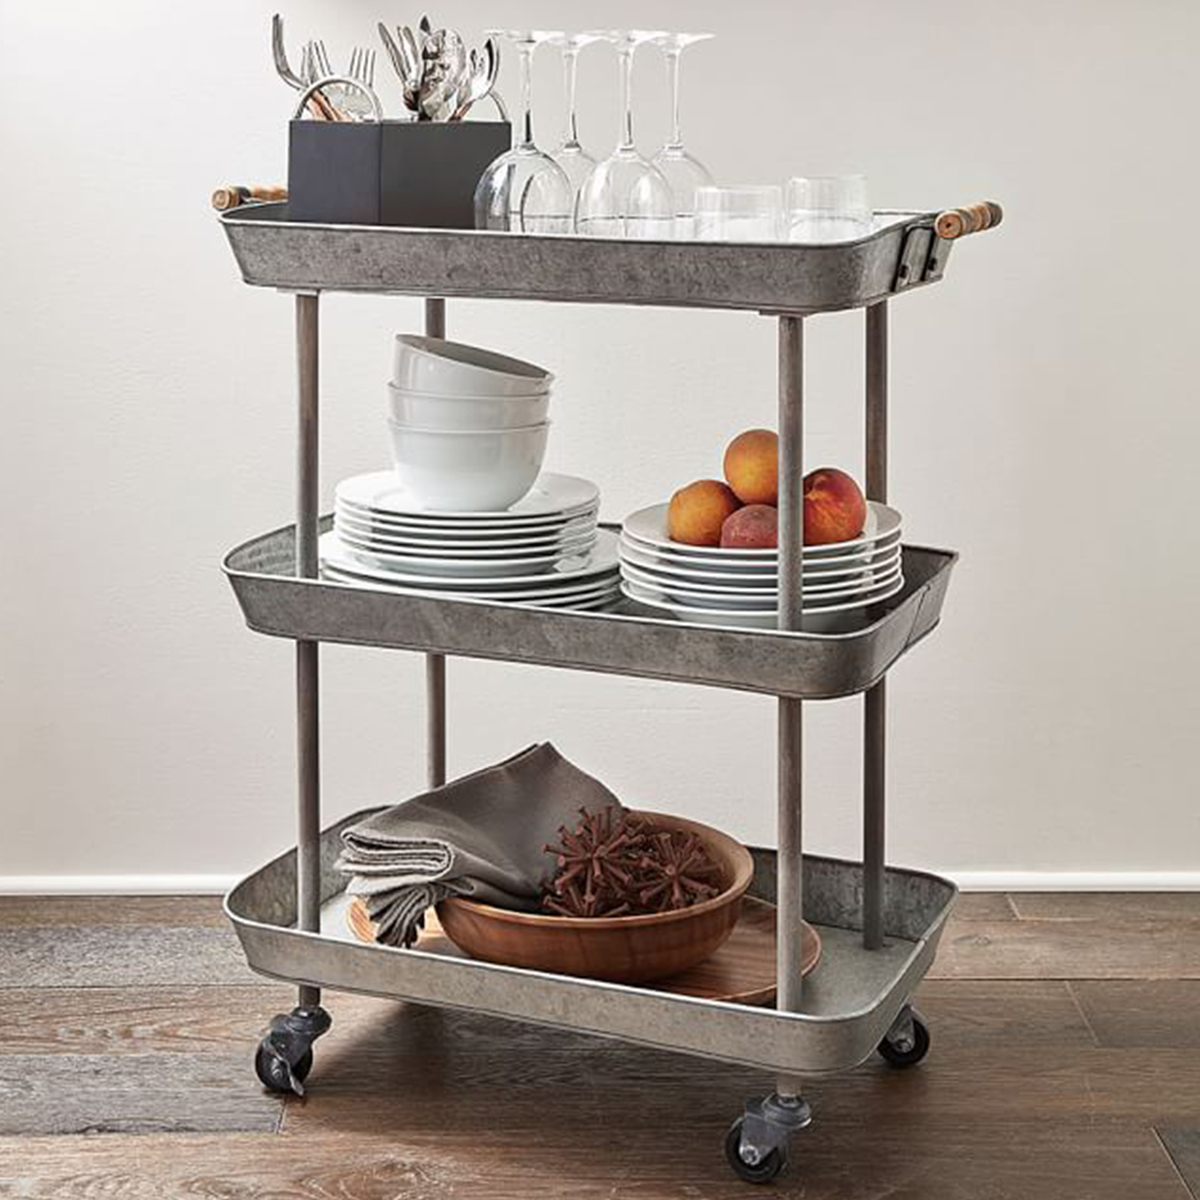 Three-tier bar cart in galvanized metal from Pottery Barn photo